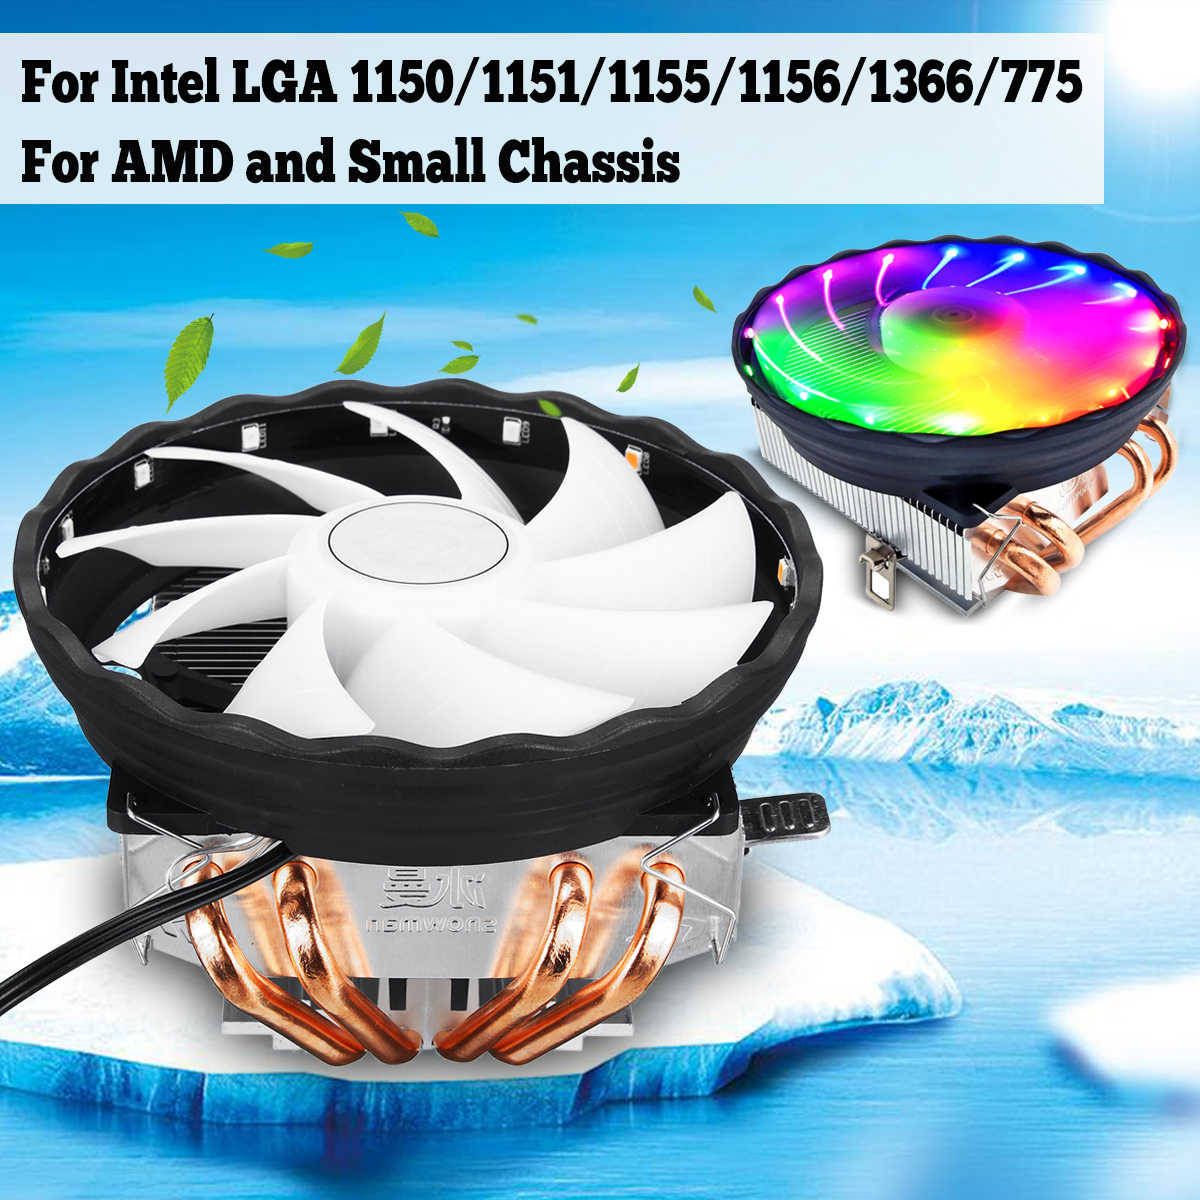 120mm LED RGB Fan 4 Heatpipe Radiator CPU Cooler Cooling for Intel LGA 1150/1151/1155/1156/1366/775 for AMD AM3+ AM3 AM2+ AM2